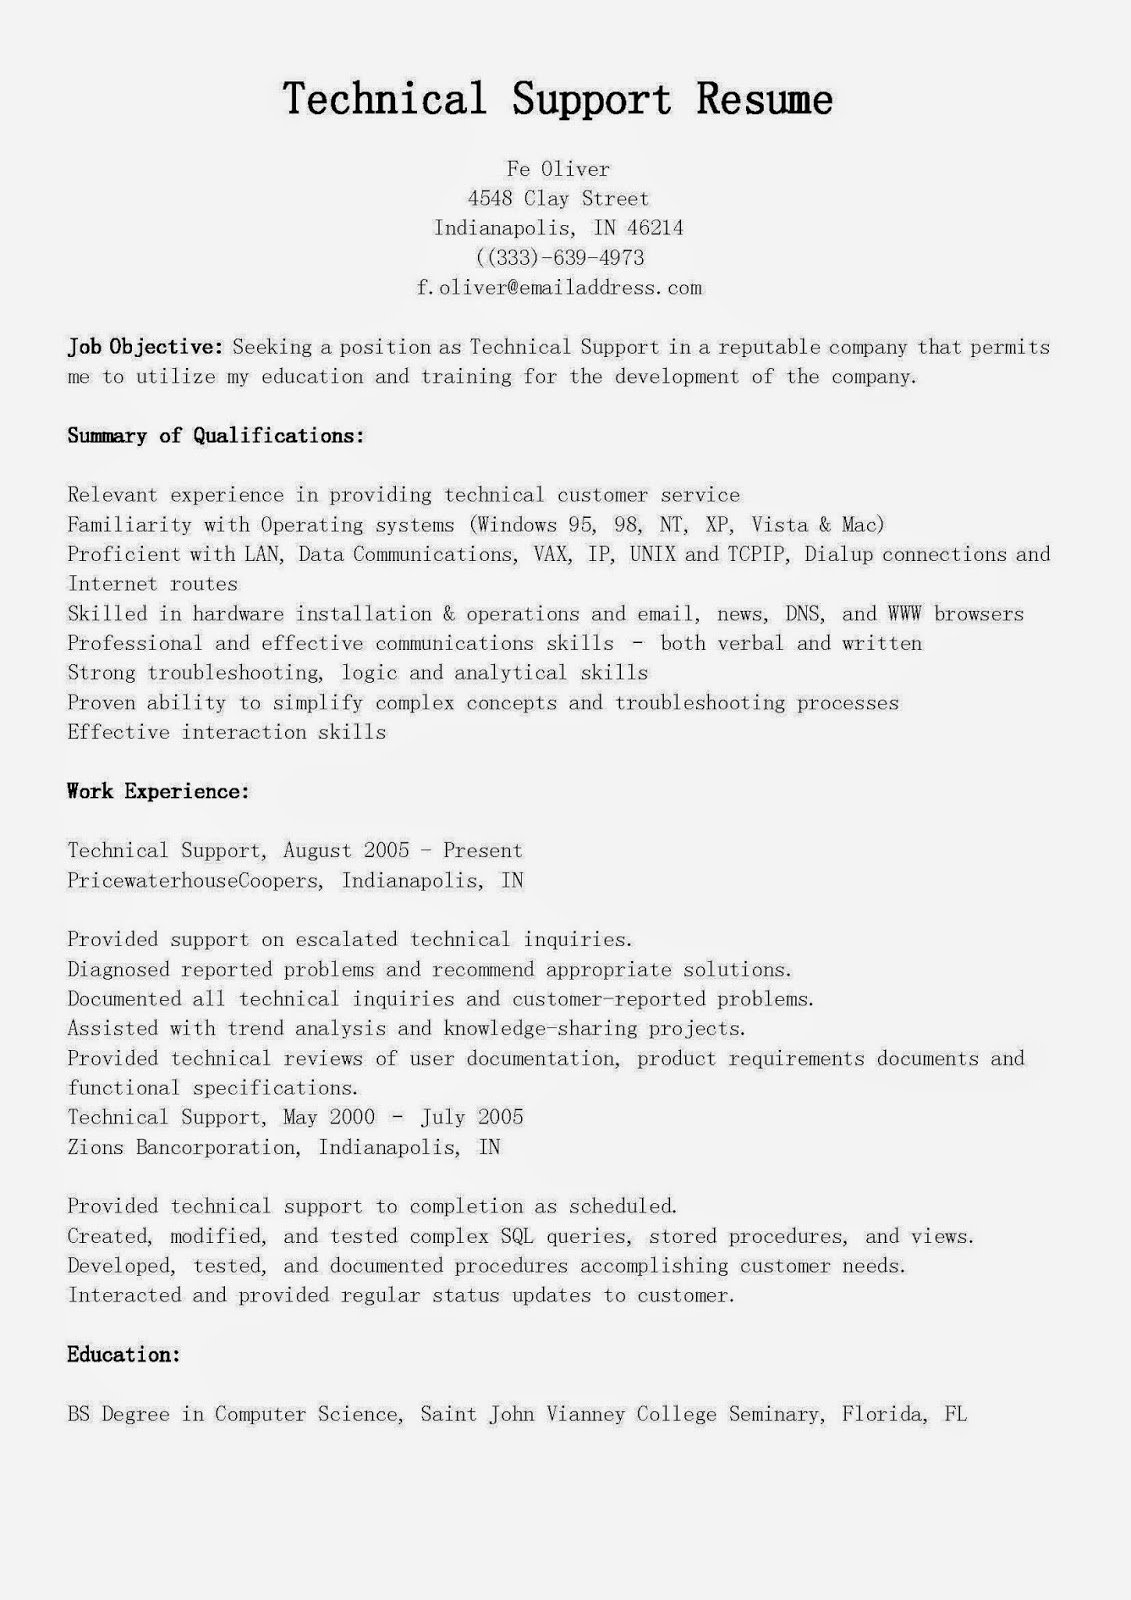 Resume Samples Technical Support Resume Sample